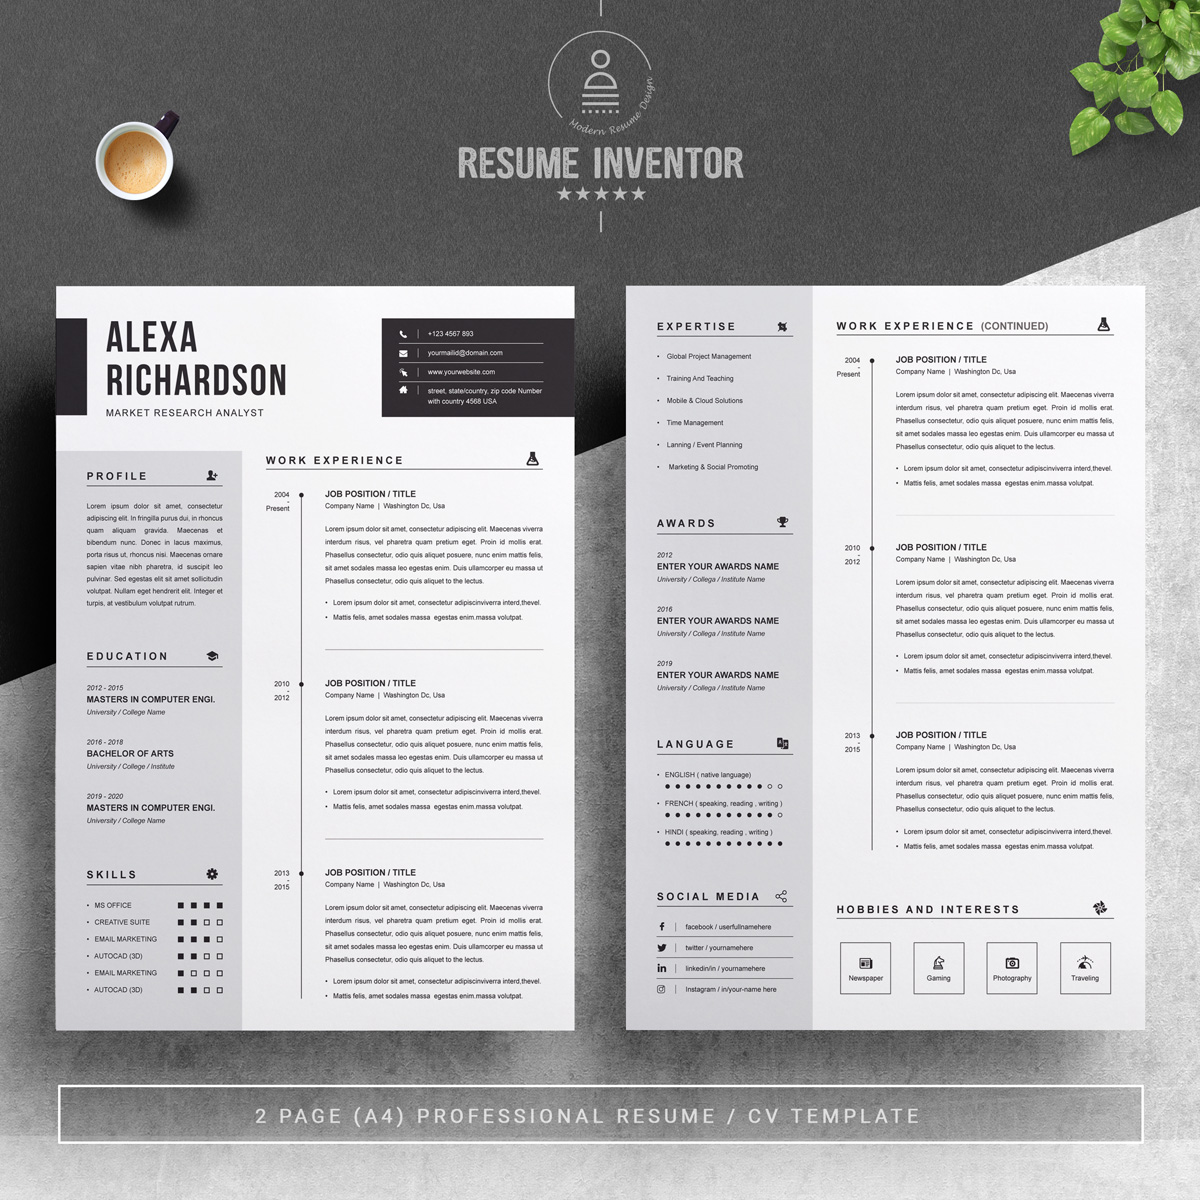 https://s3u.tmimgcdn.com/1860567-1561183259430_02_2-Pages-Free-Resume-Design-Template.jpg